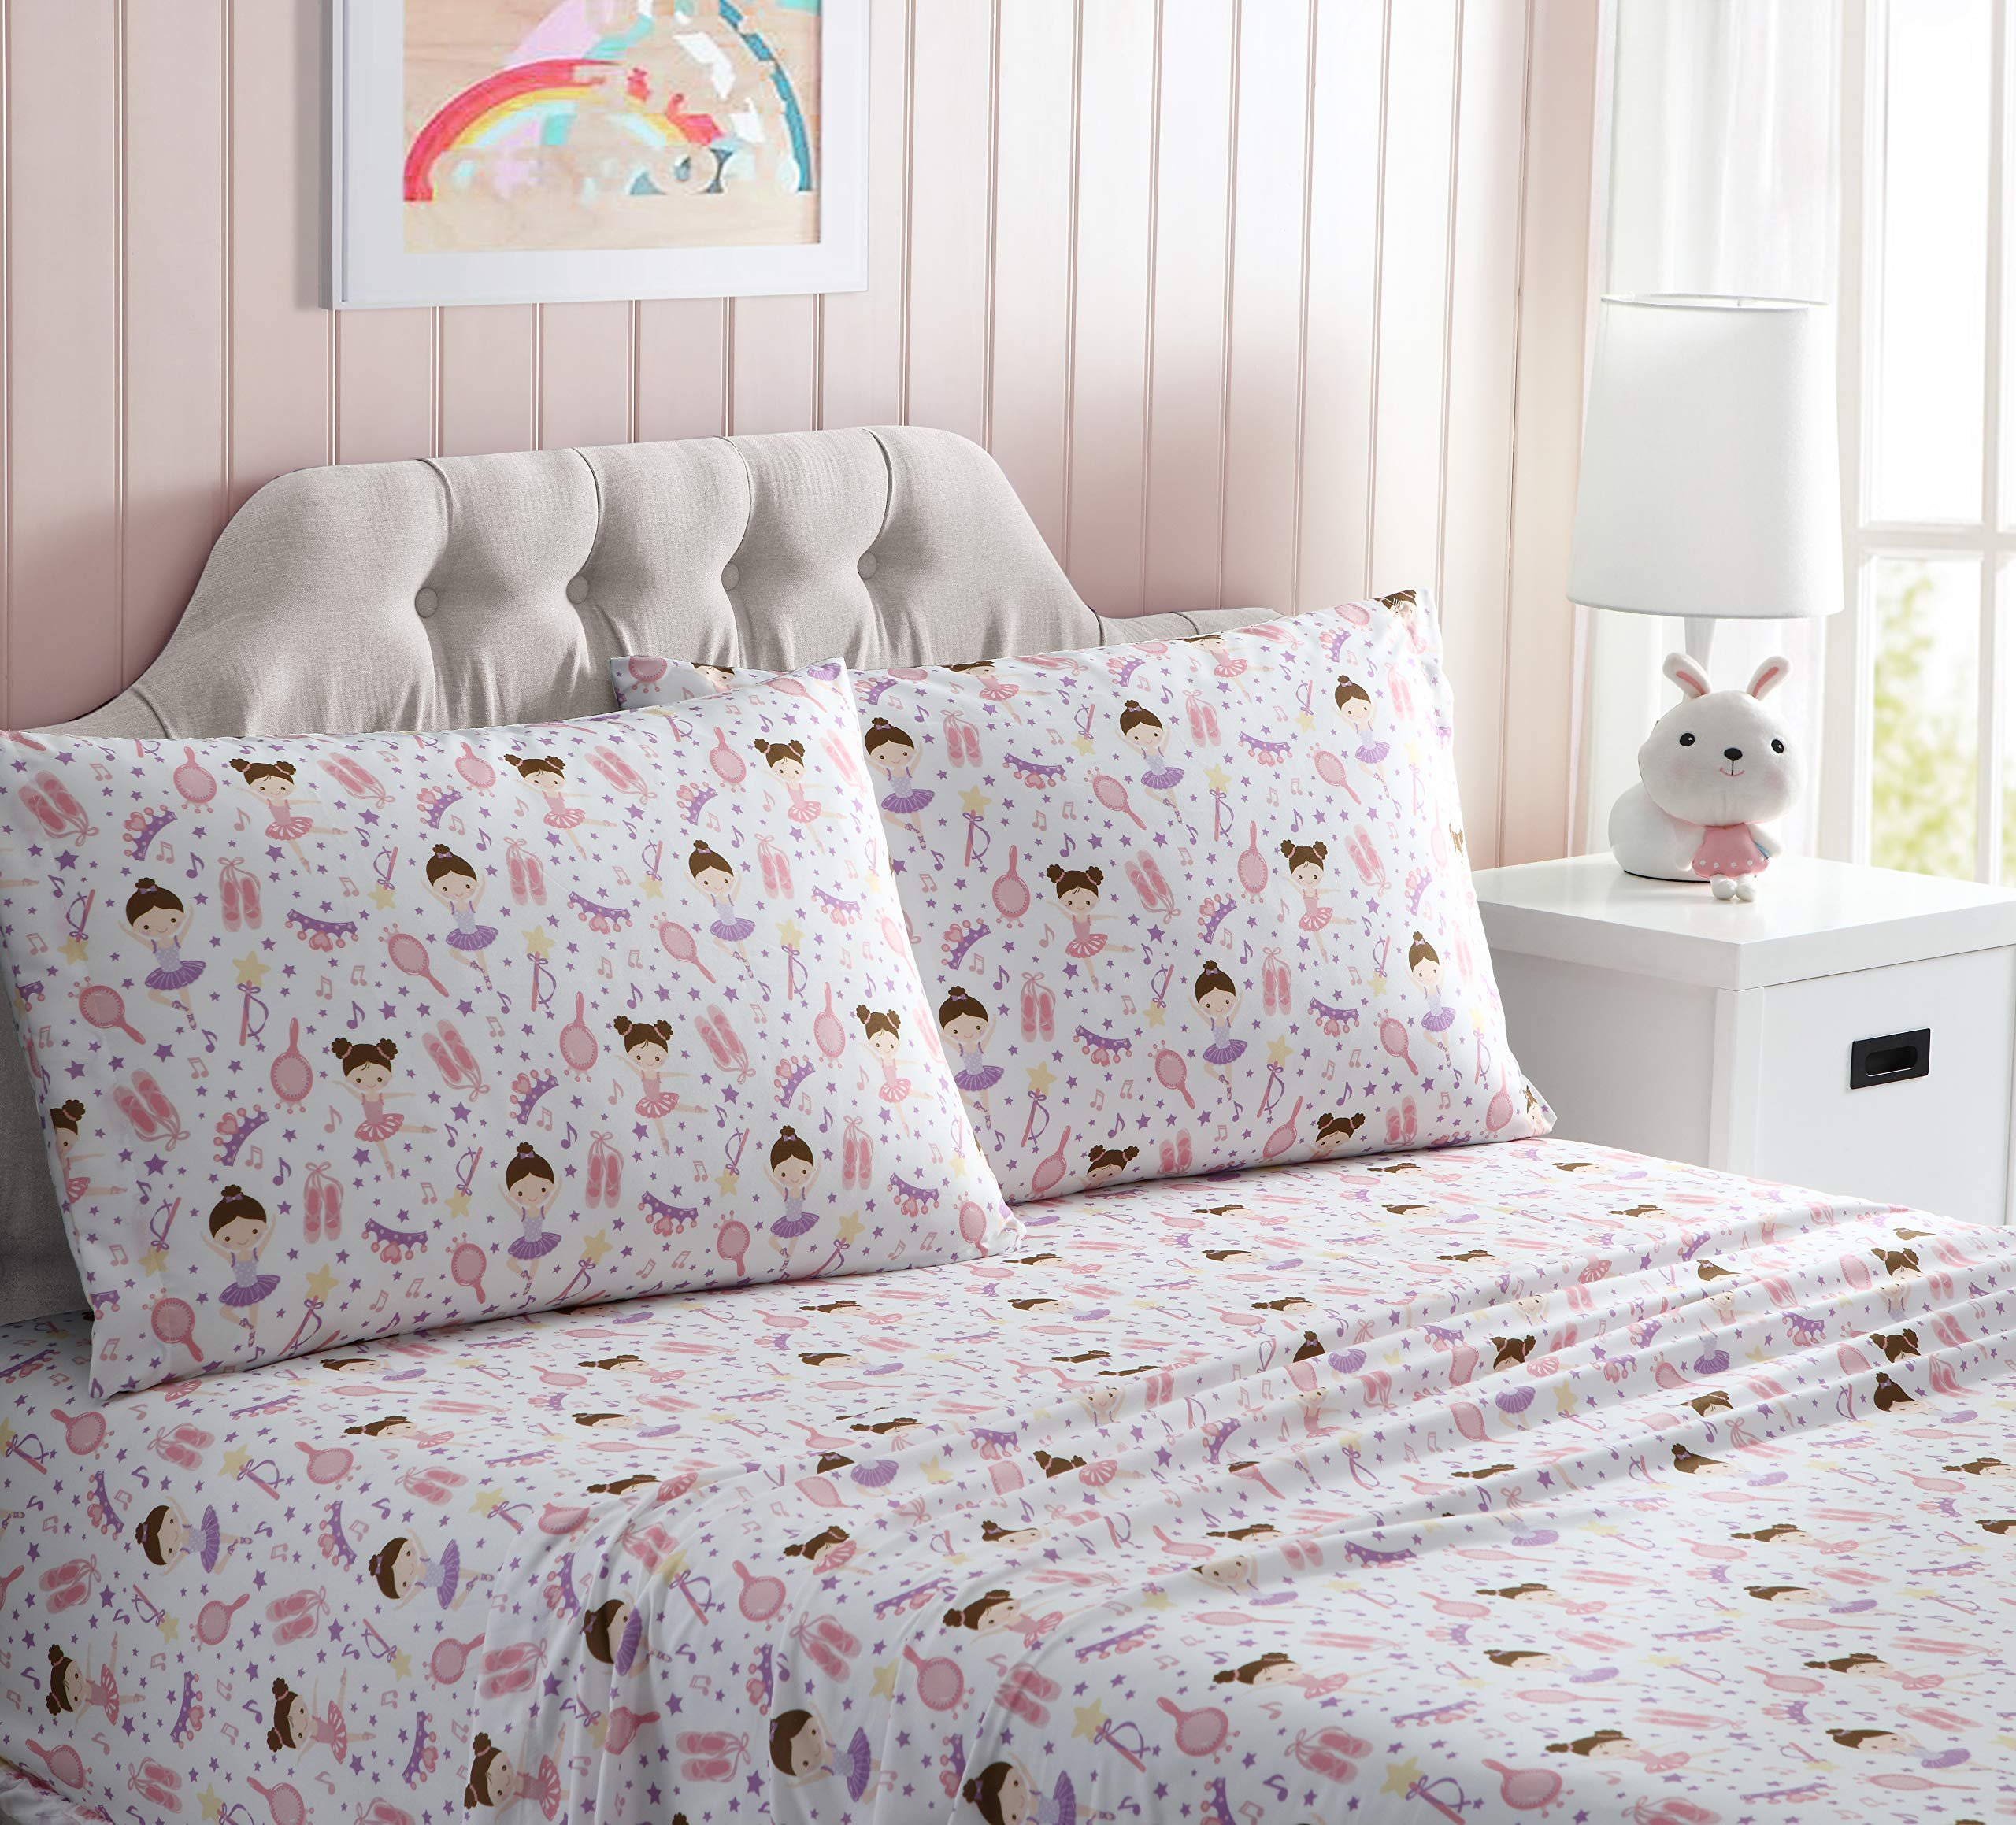 Kute Kids Super Soft Sheet Set - Ballerina - Includes Pillowcase(s) Available in Twin & Full Size (Full) by Kute Kids